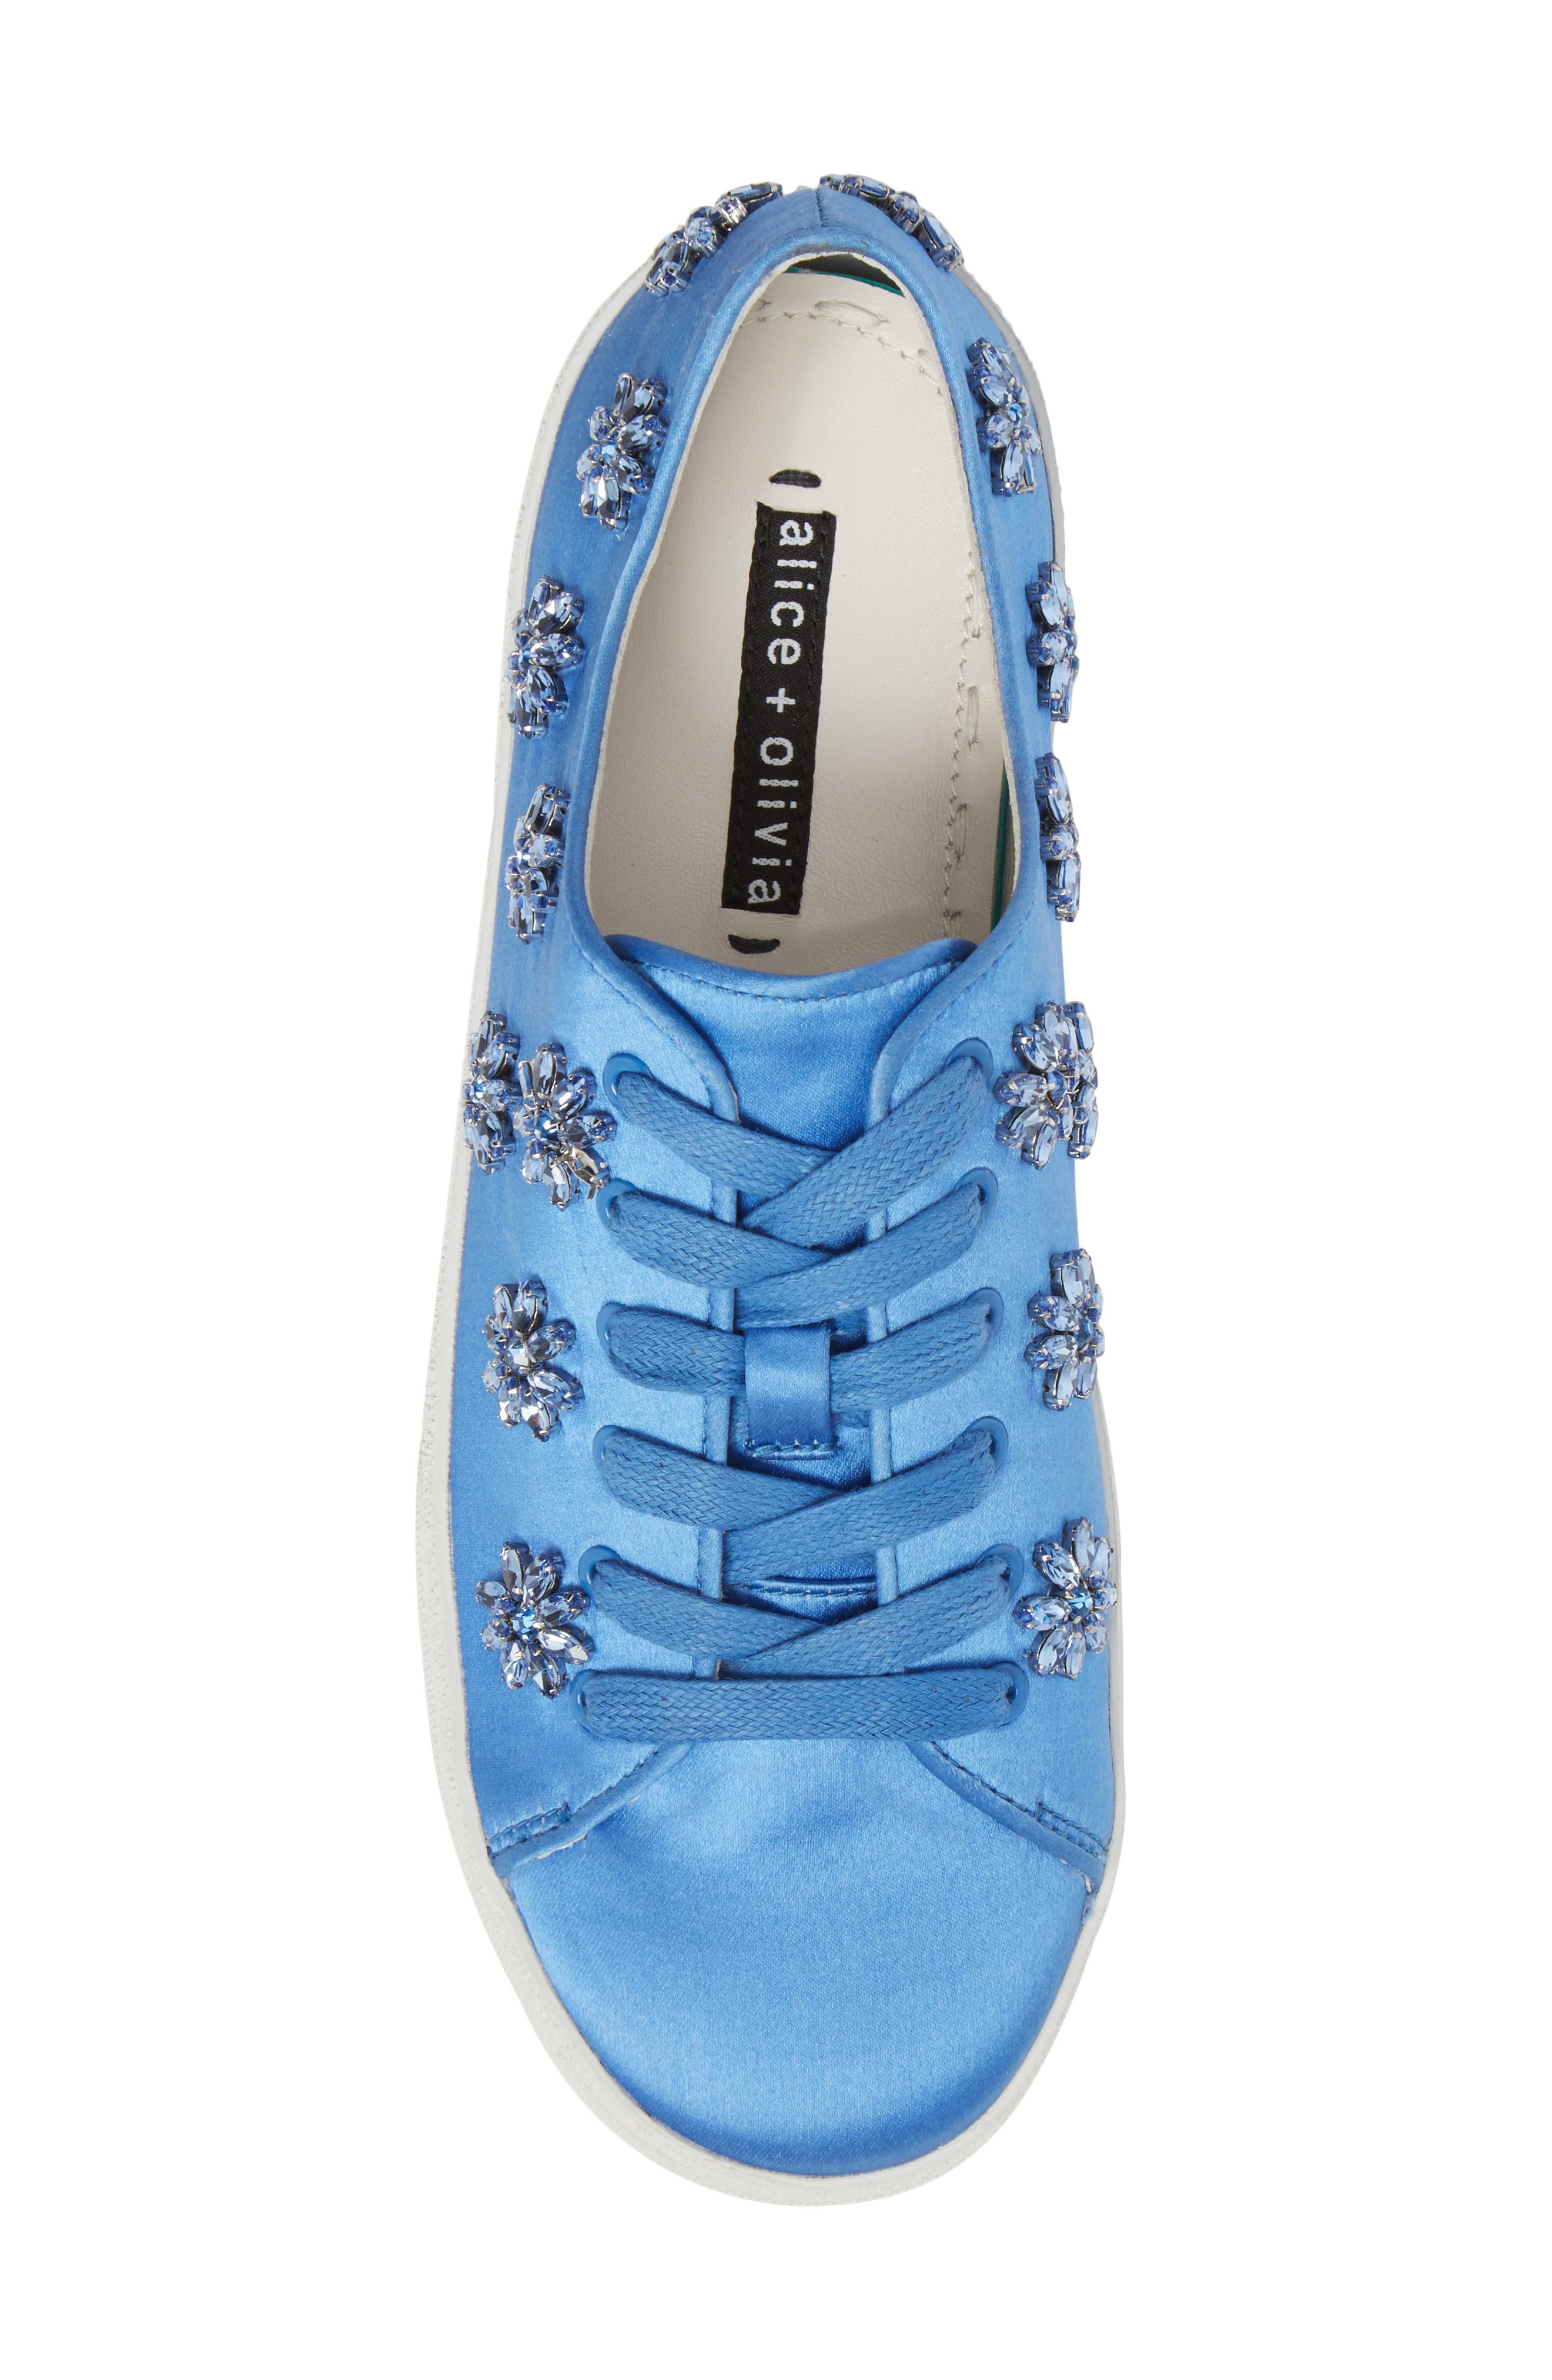 Cleo Crystal Embellished Sneaker,                             Alternate thumbnail 5, color,                             430